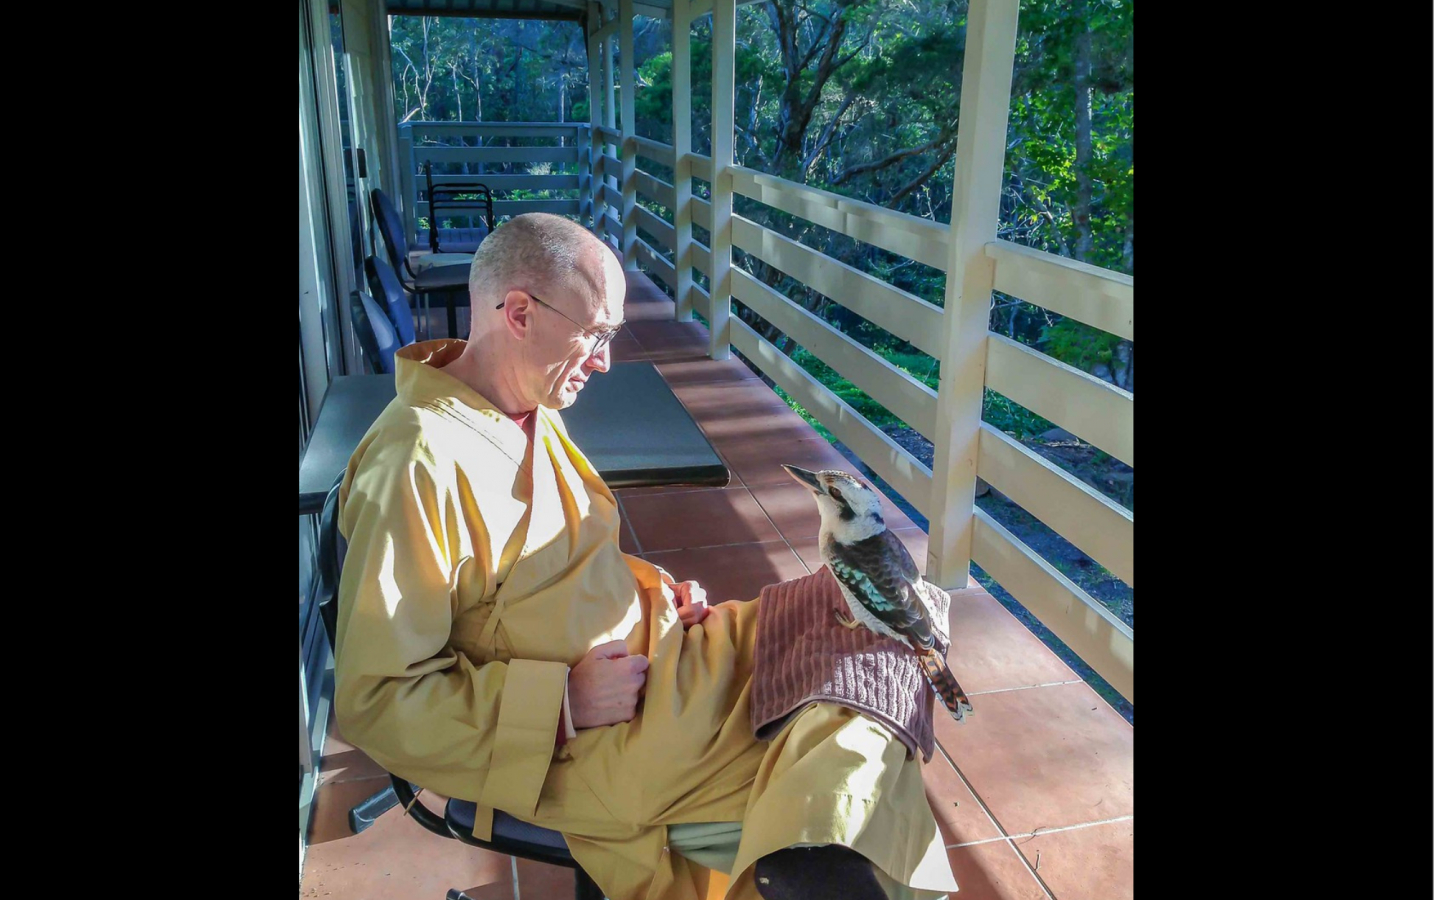 The second is wild bird, a kookaburra named Ollie, perching on the leg of a monk and appearing to be deep in conversation. --Rev. Heng Sure